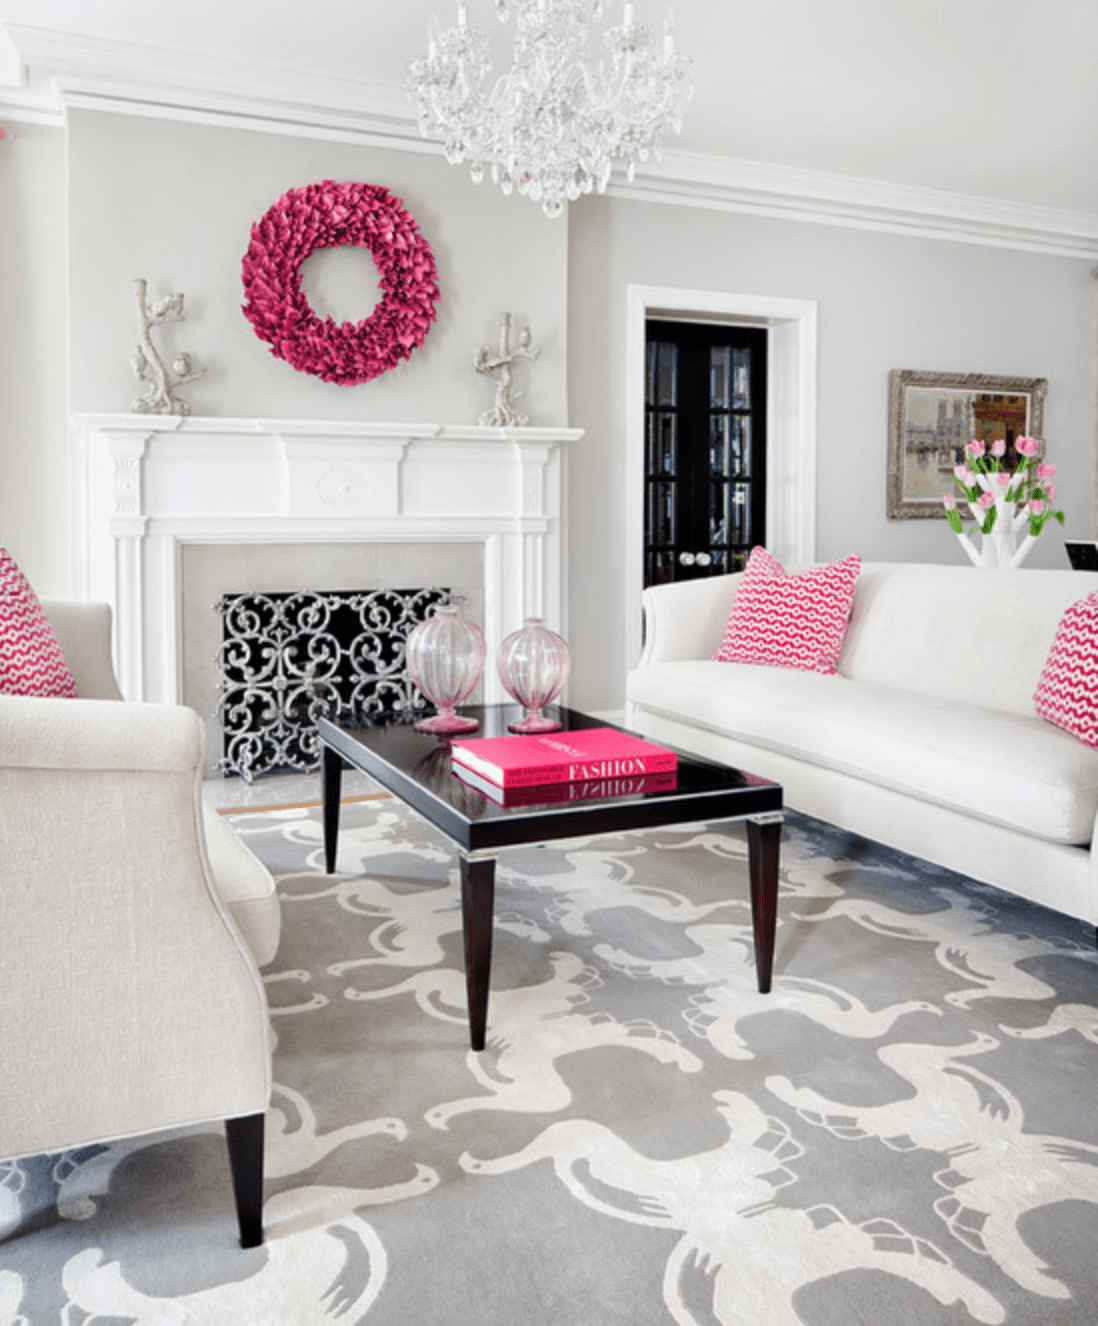 Neutral room with hot pink accessories by Martha O'Hara Interiors via Houzz